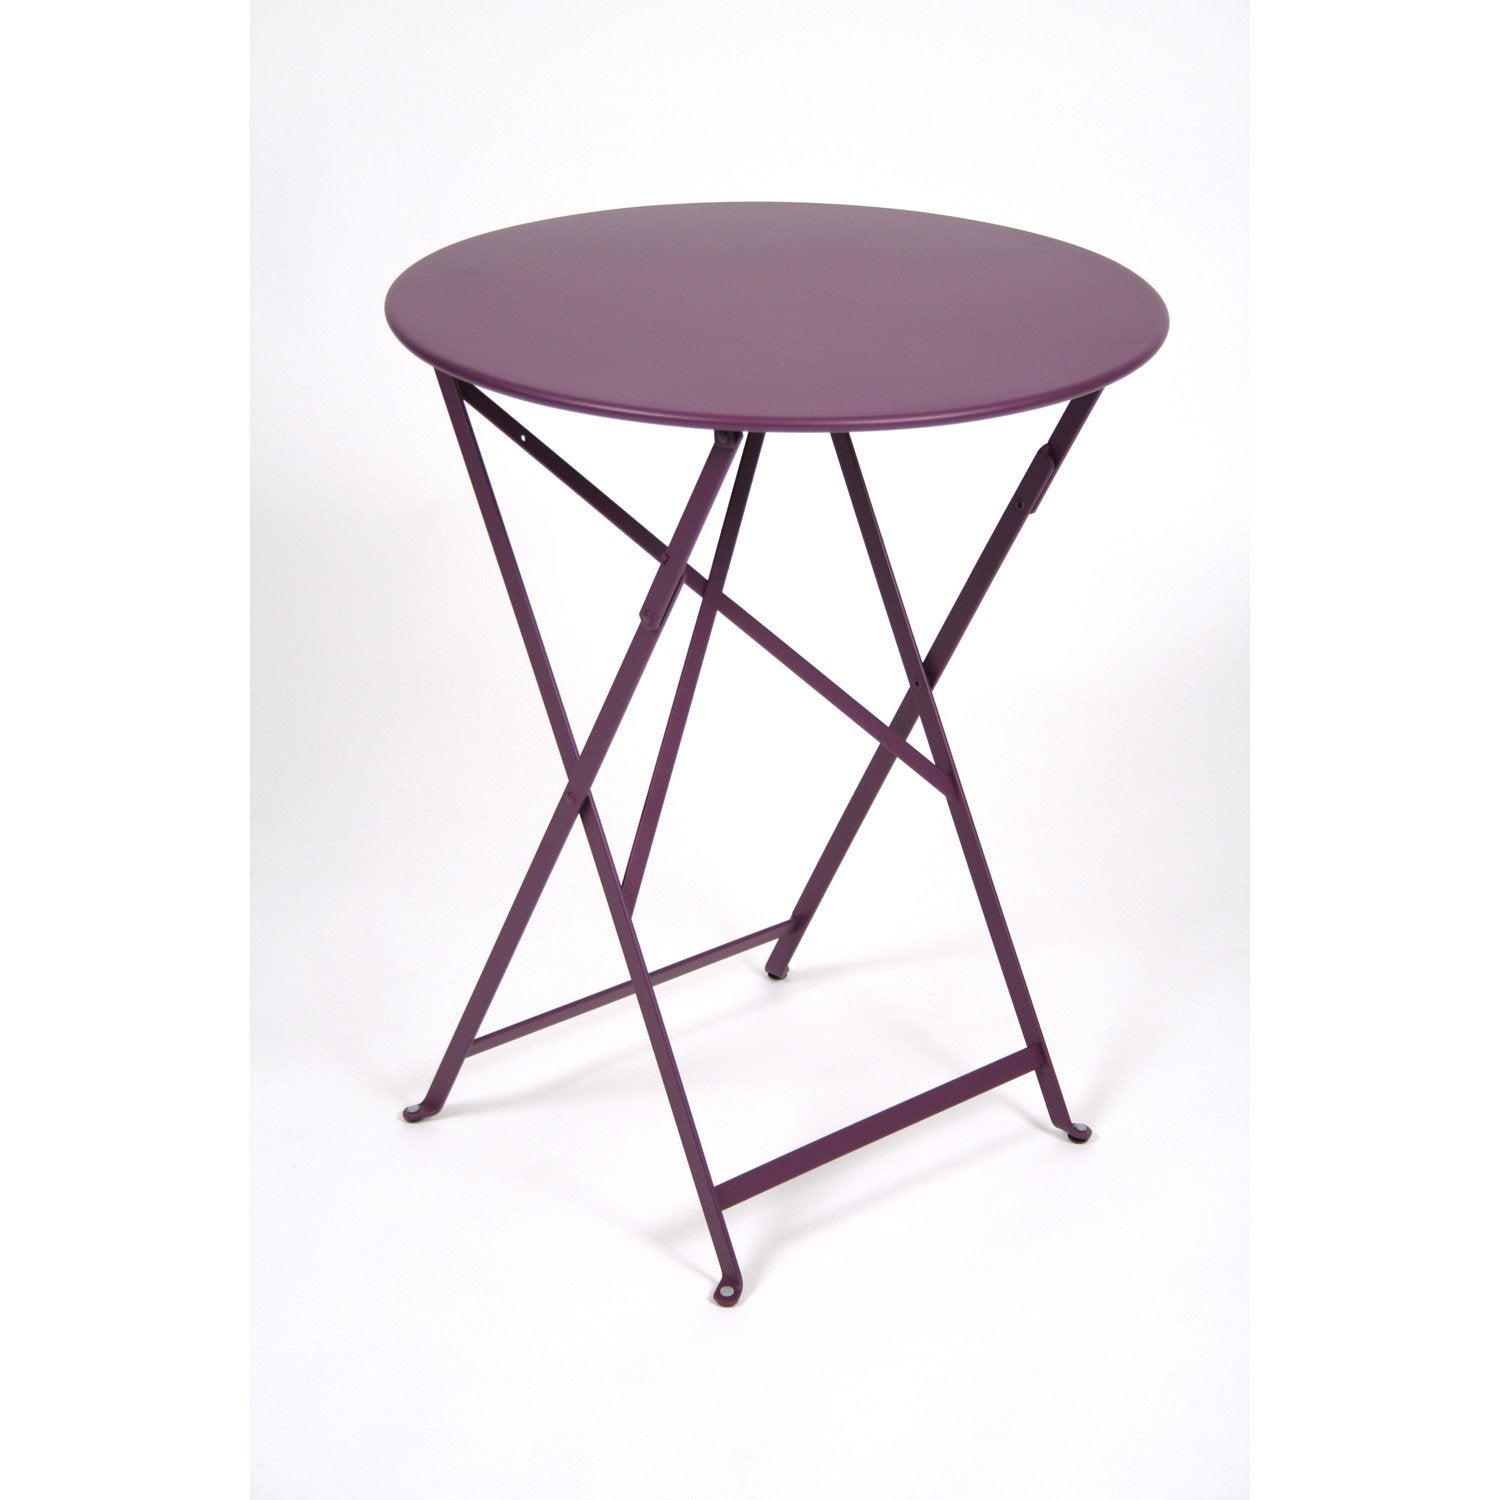 Table de jardin ronde bistro fermob leroy merlin for Table de jardin chez castorama